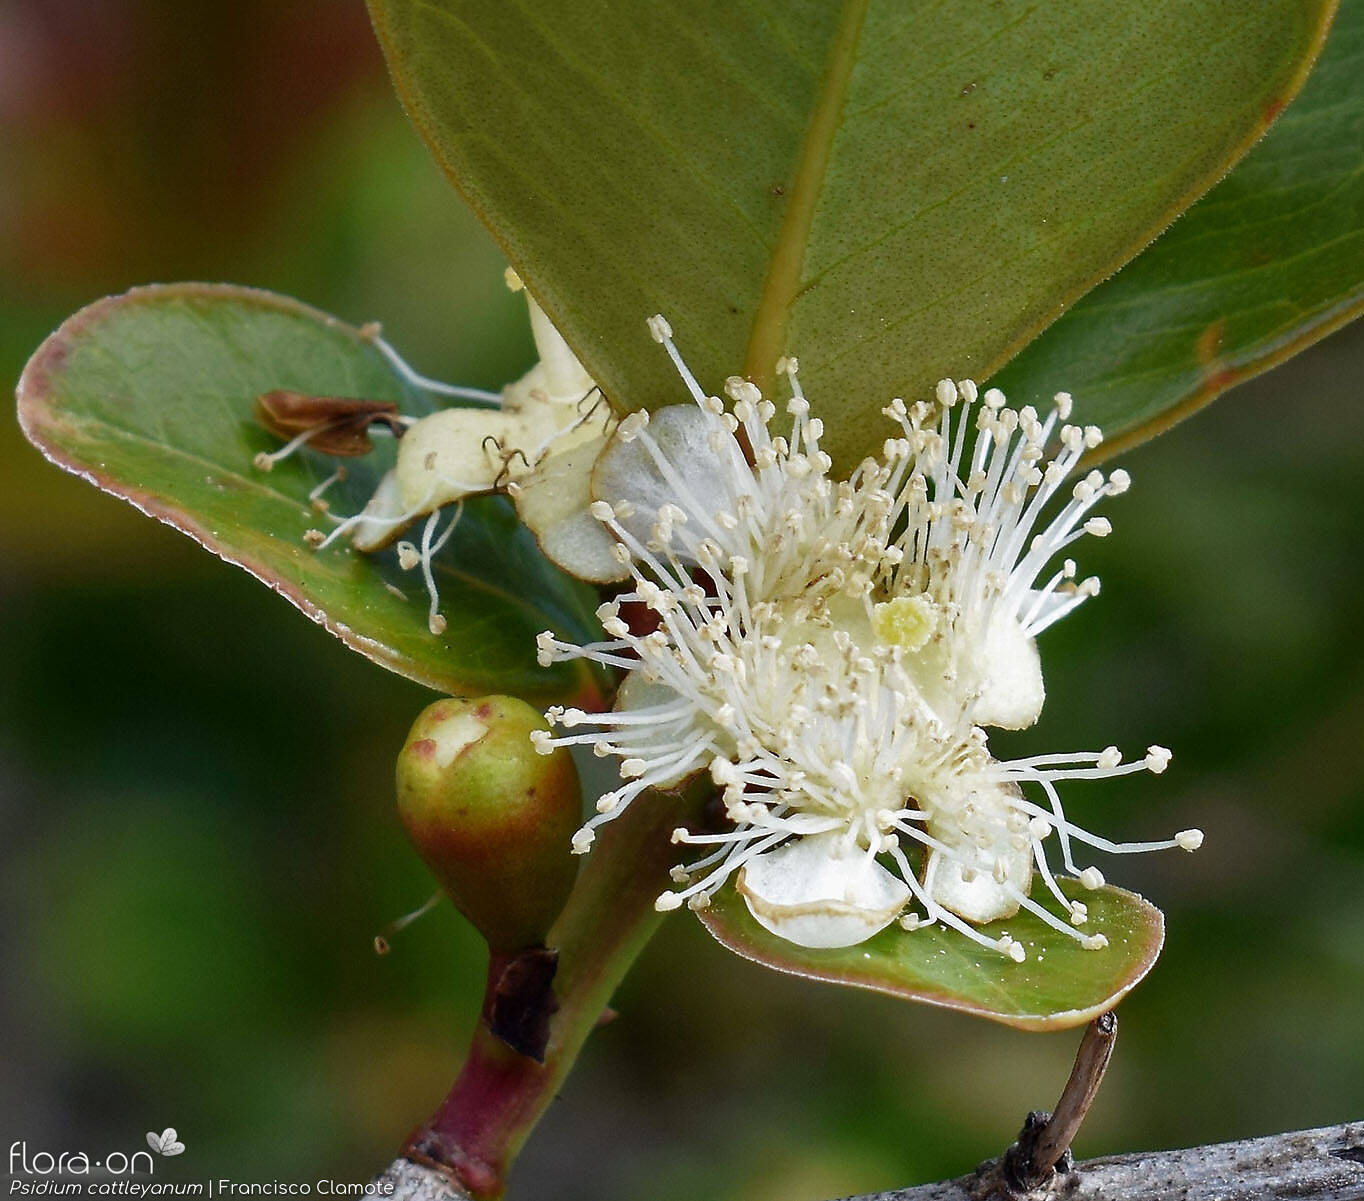 Psidium cattleyanum -  | Francisco Clamote; CC BY-NC 4.0